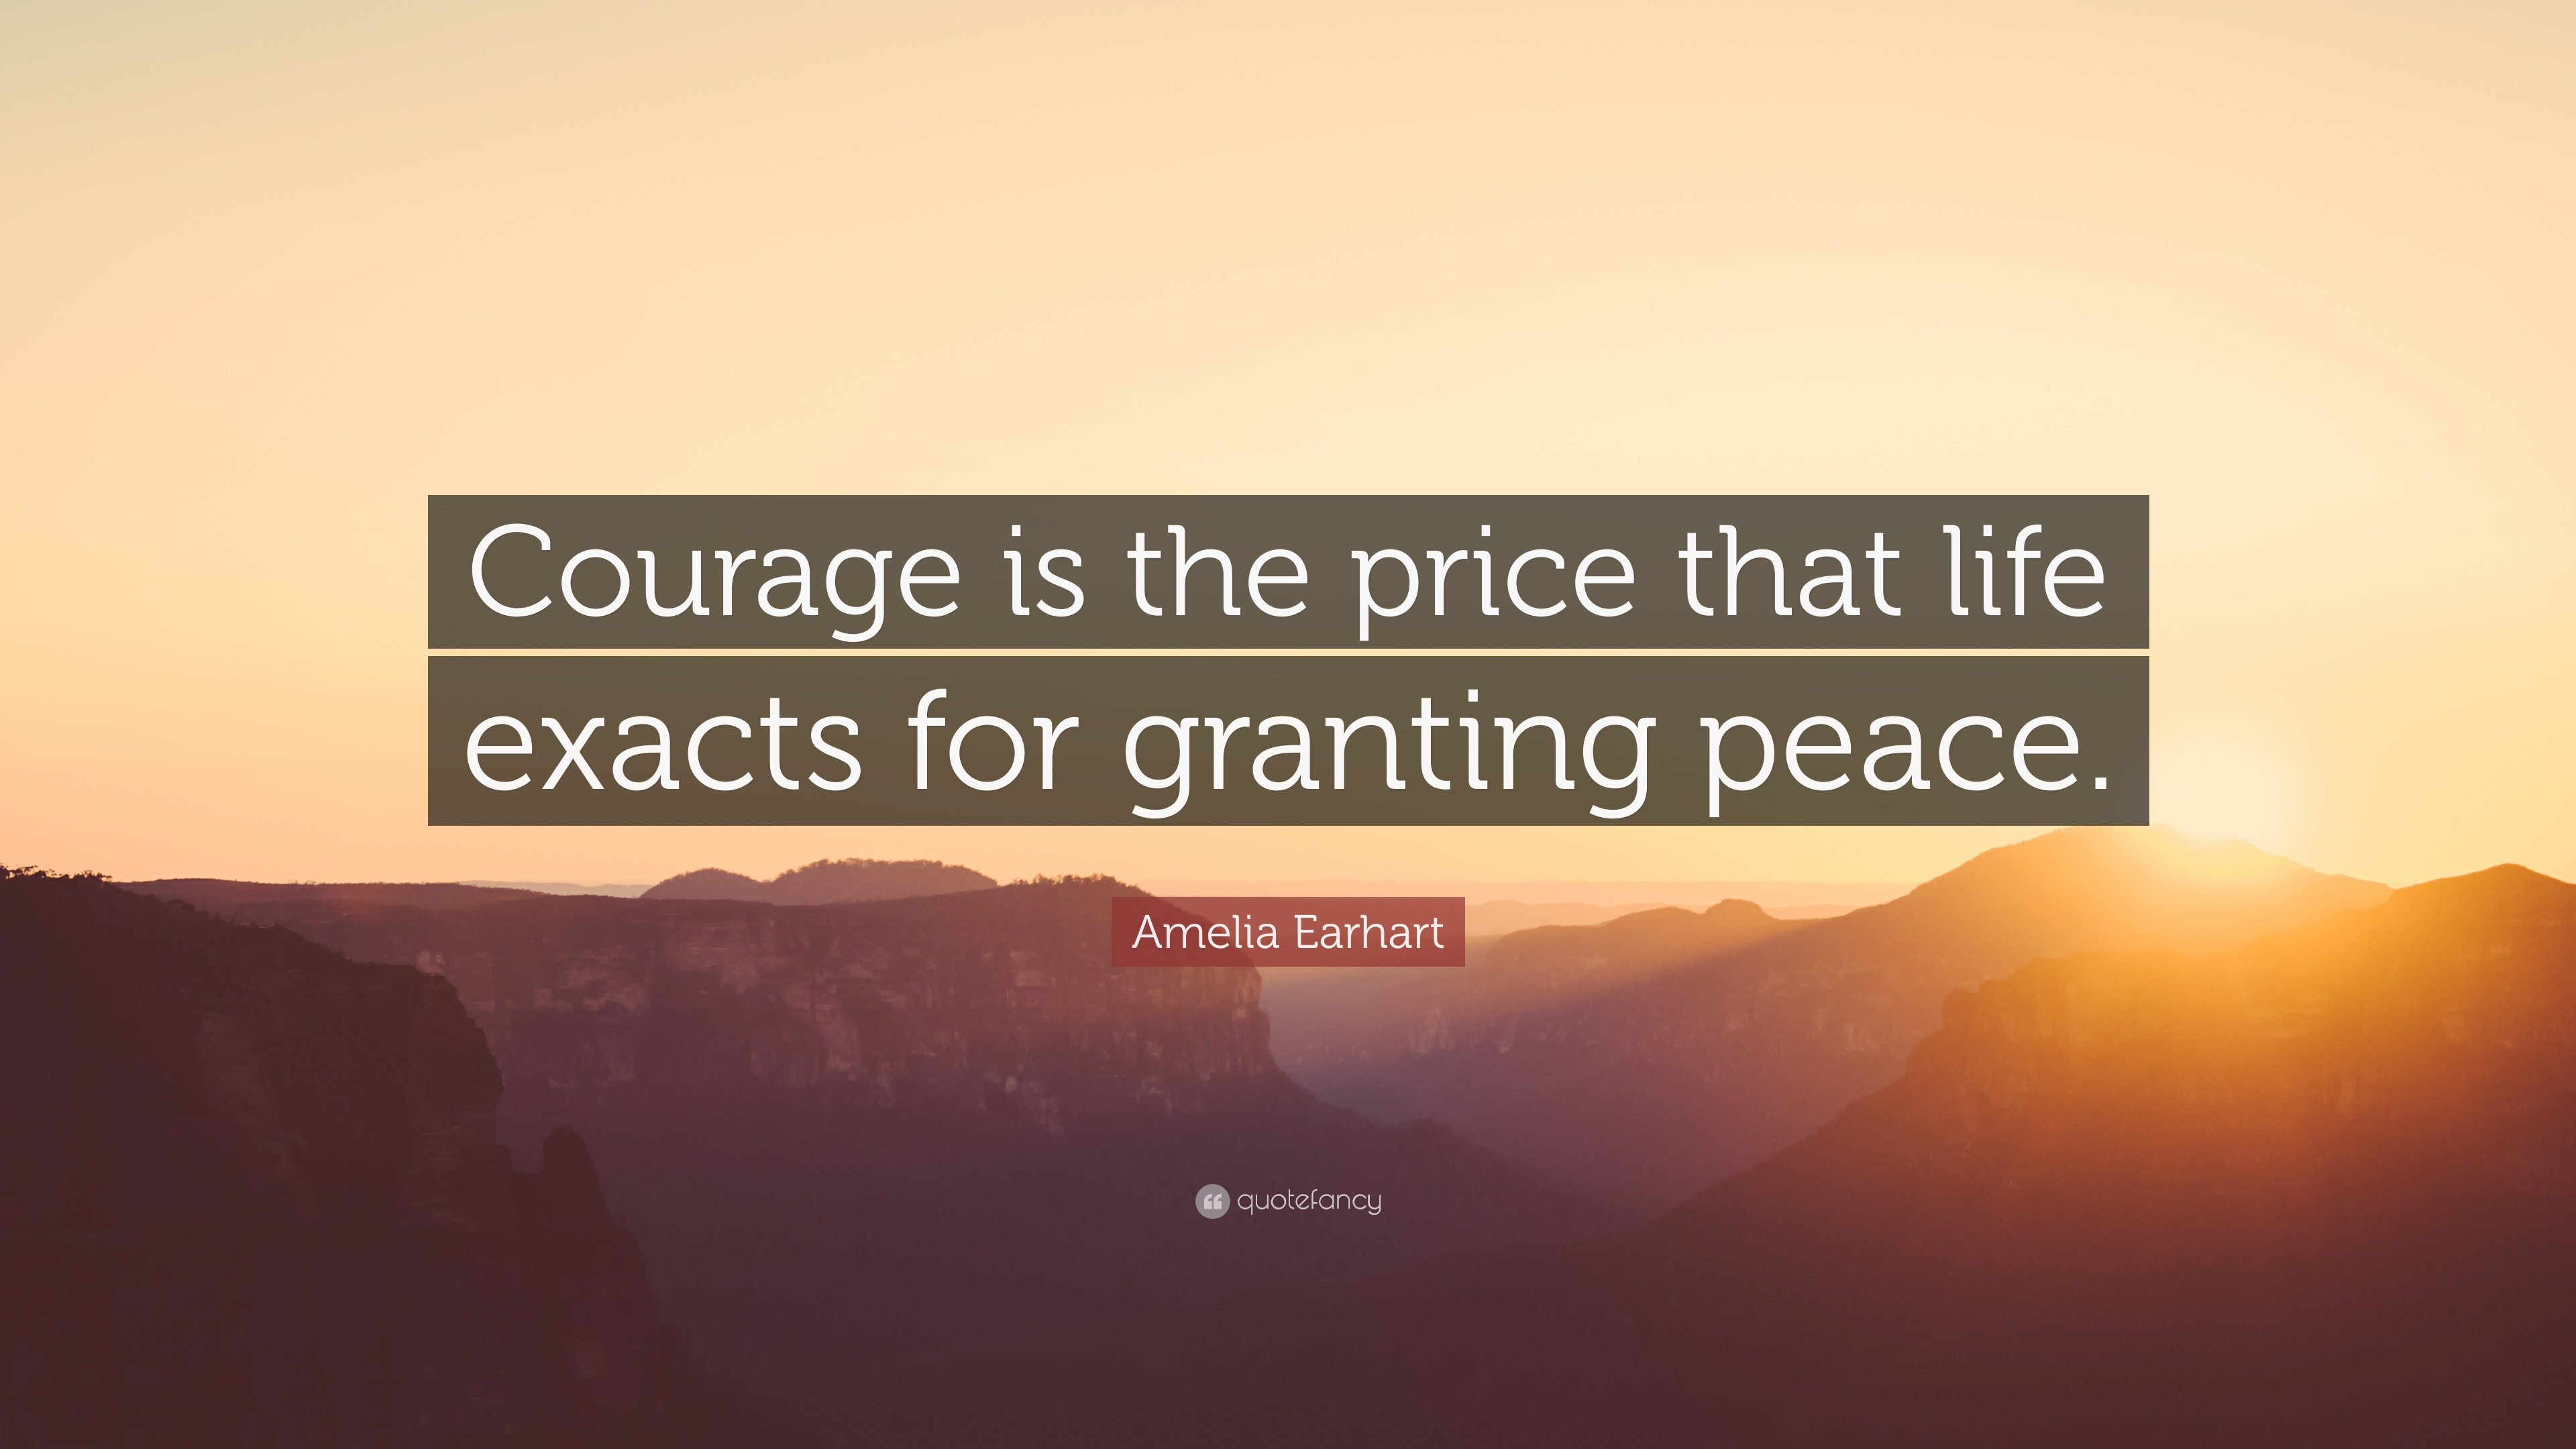 life and the courage of amelia earhart Courage is the price that life exacts for granting peace - amelia earhart quotes from brainyquotecom.